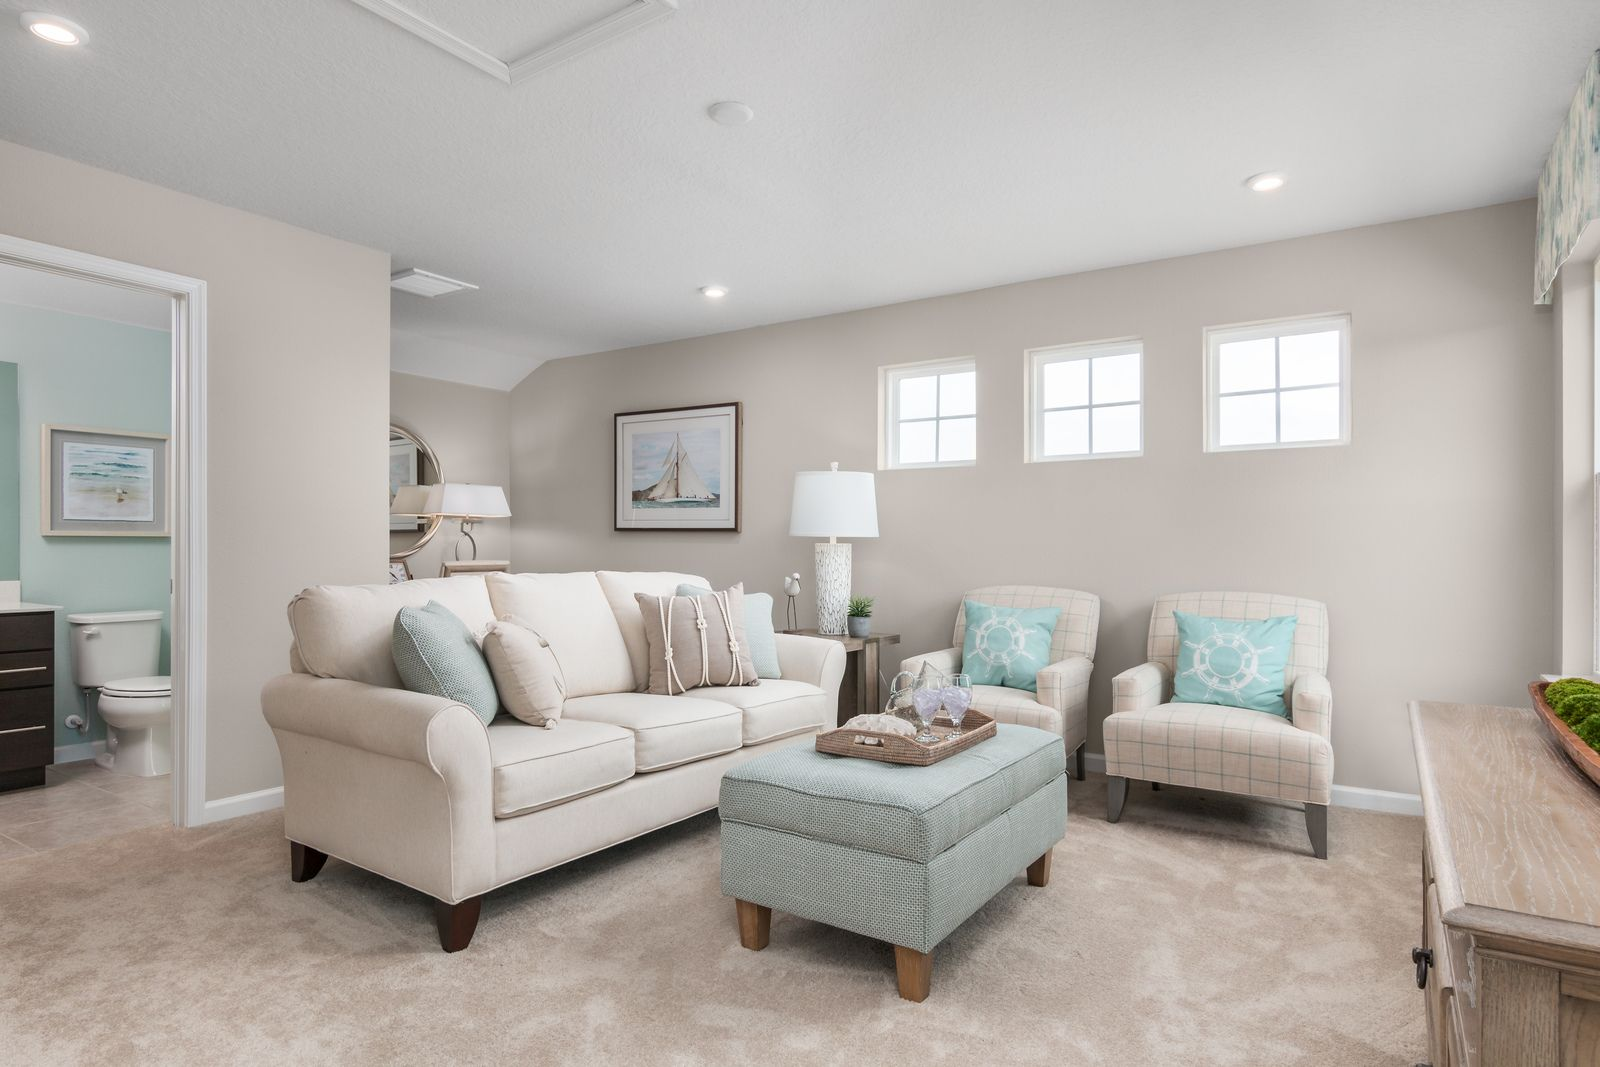 Living Area featured in the Seagate By Ryan Homes in Martin-St. Lucie-Okeechobee Counties, FL